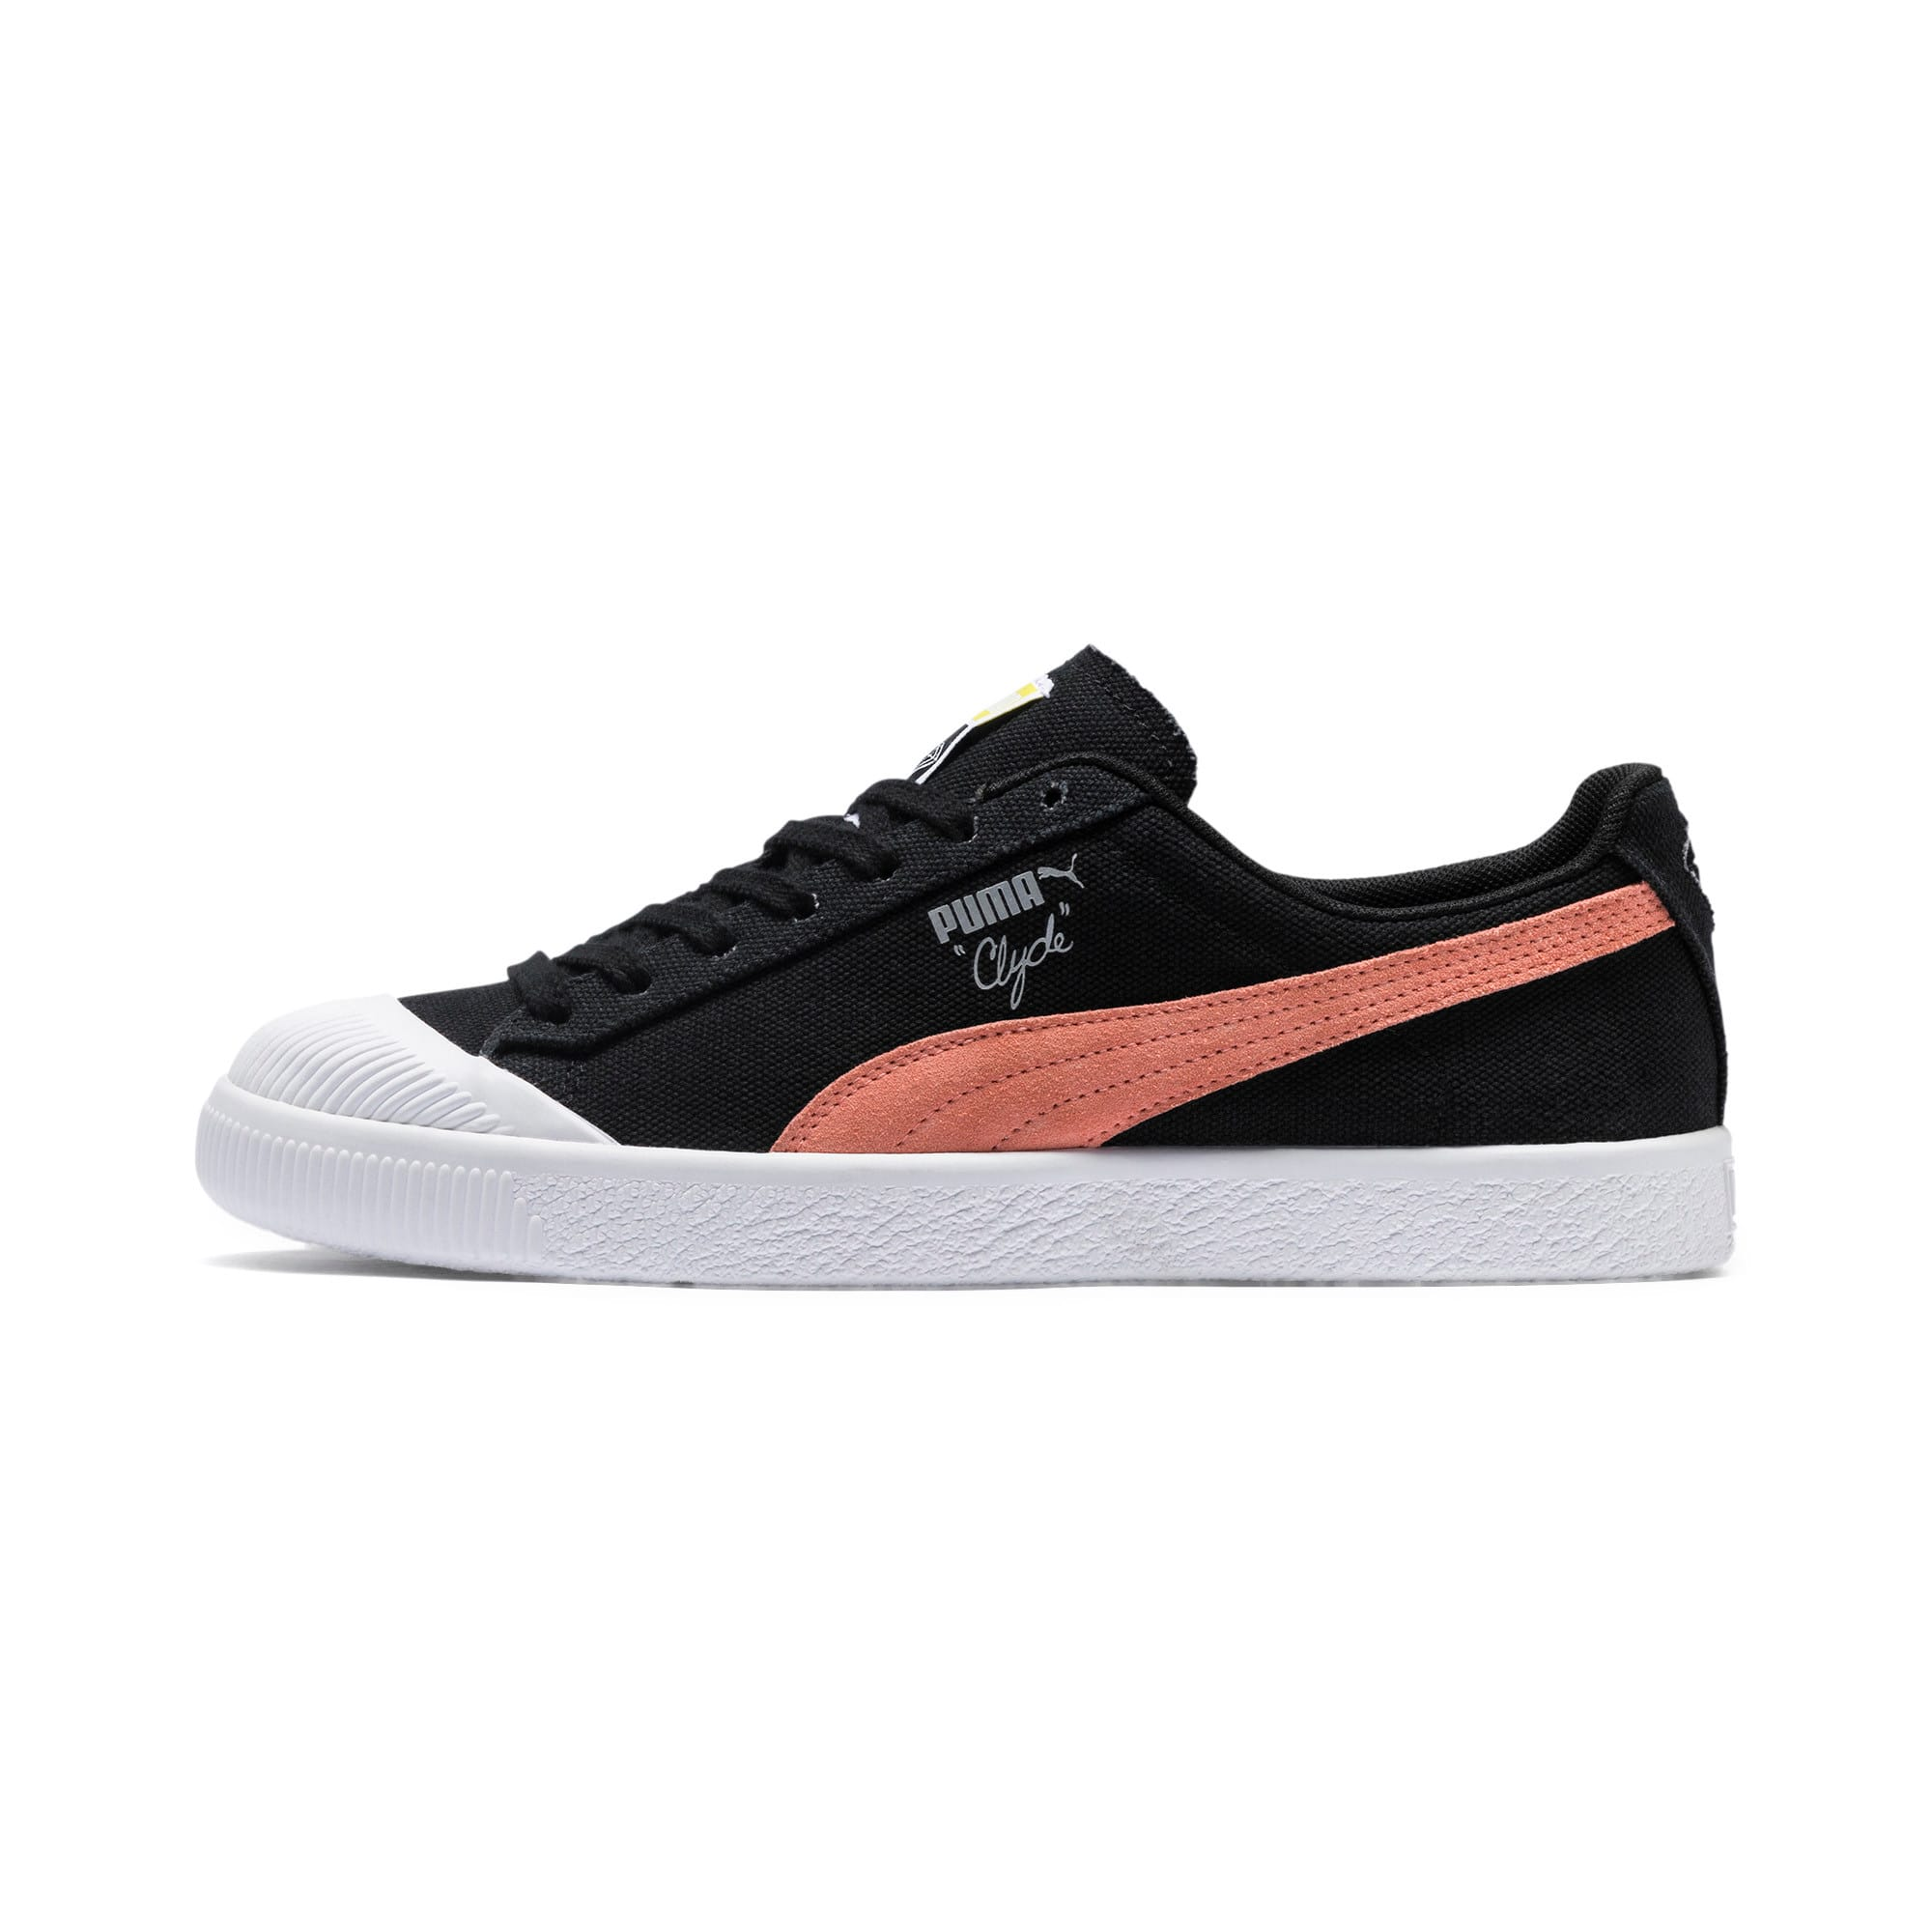 grossiste 1dd94 213af PUMA x DIAMOND SUPPLY CO. Clyde Sneakers